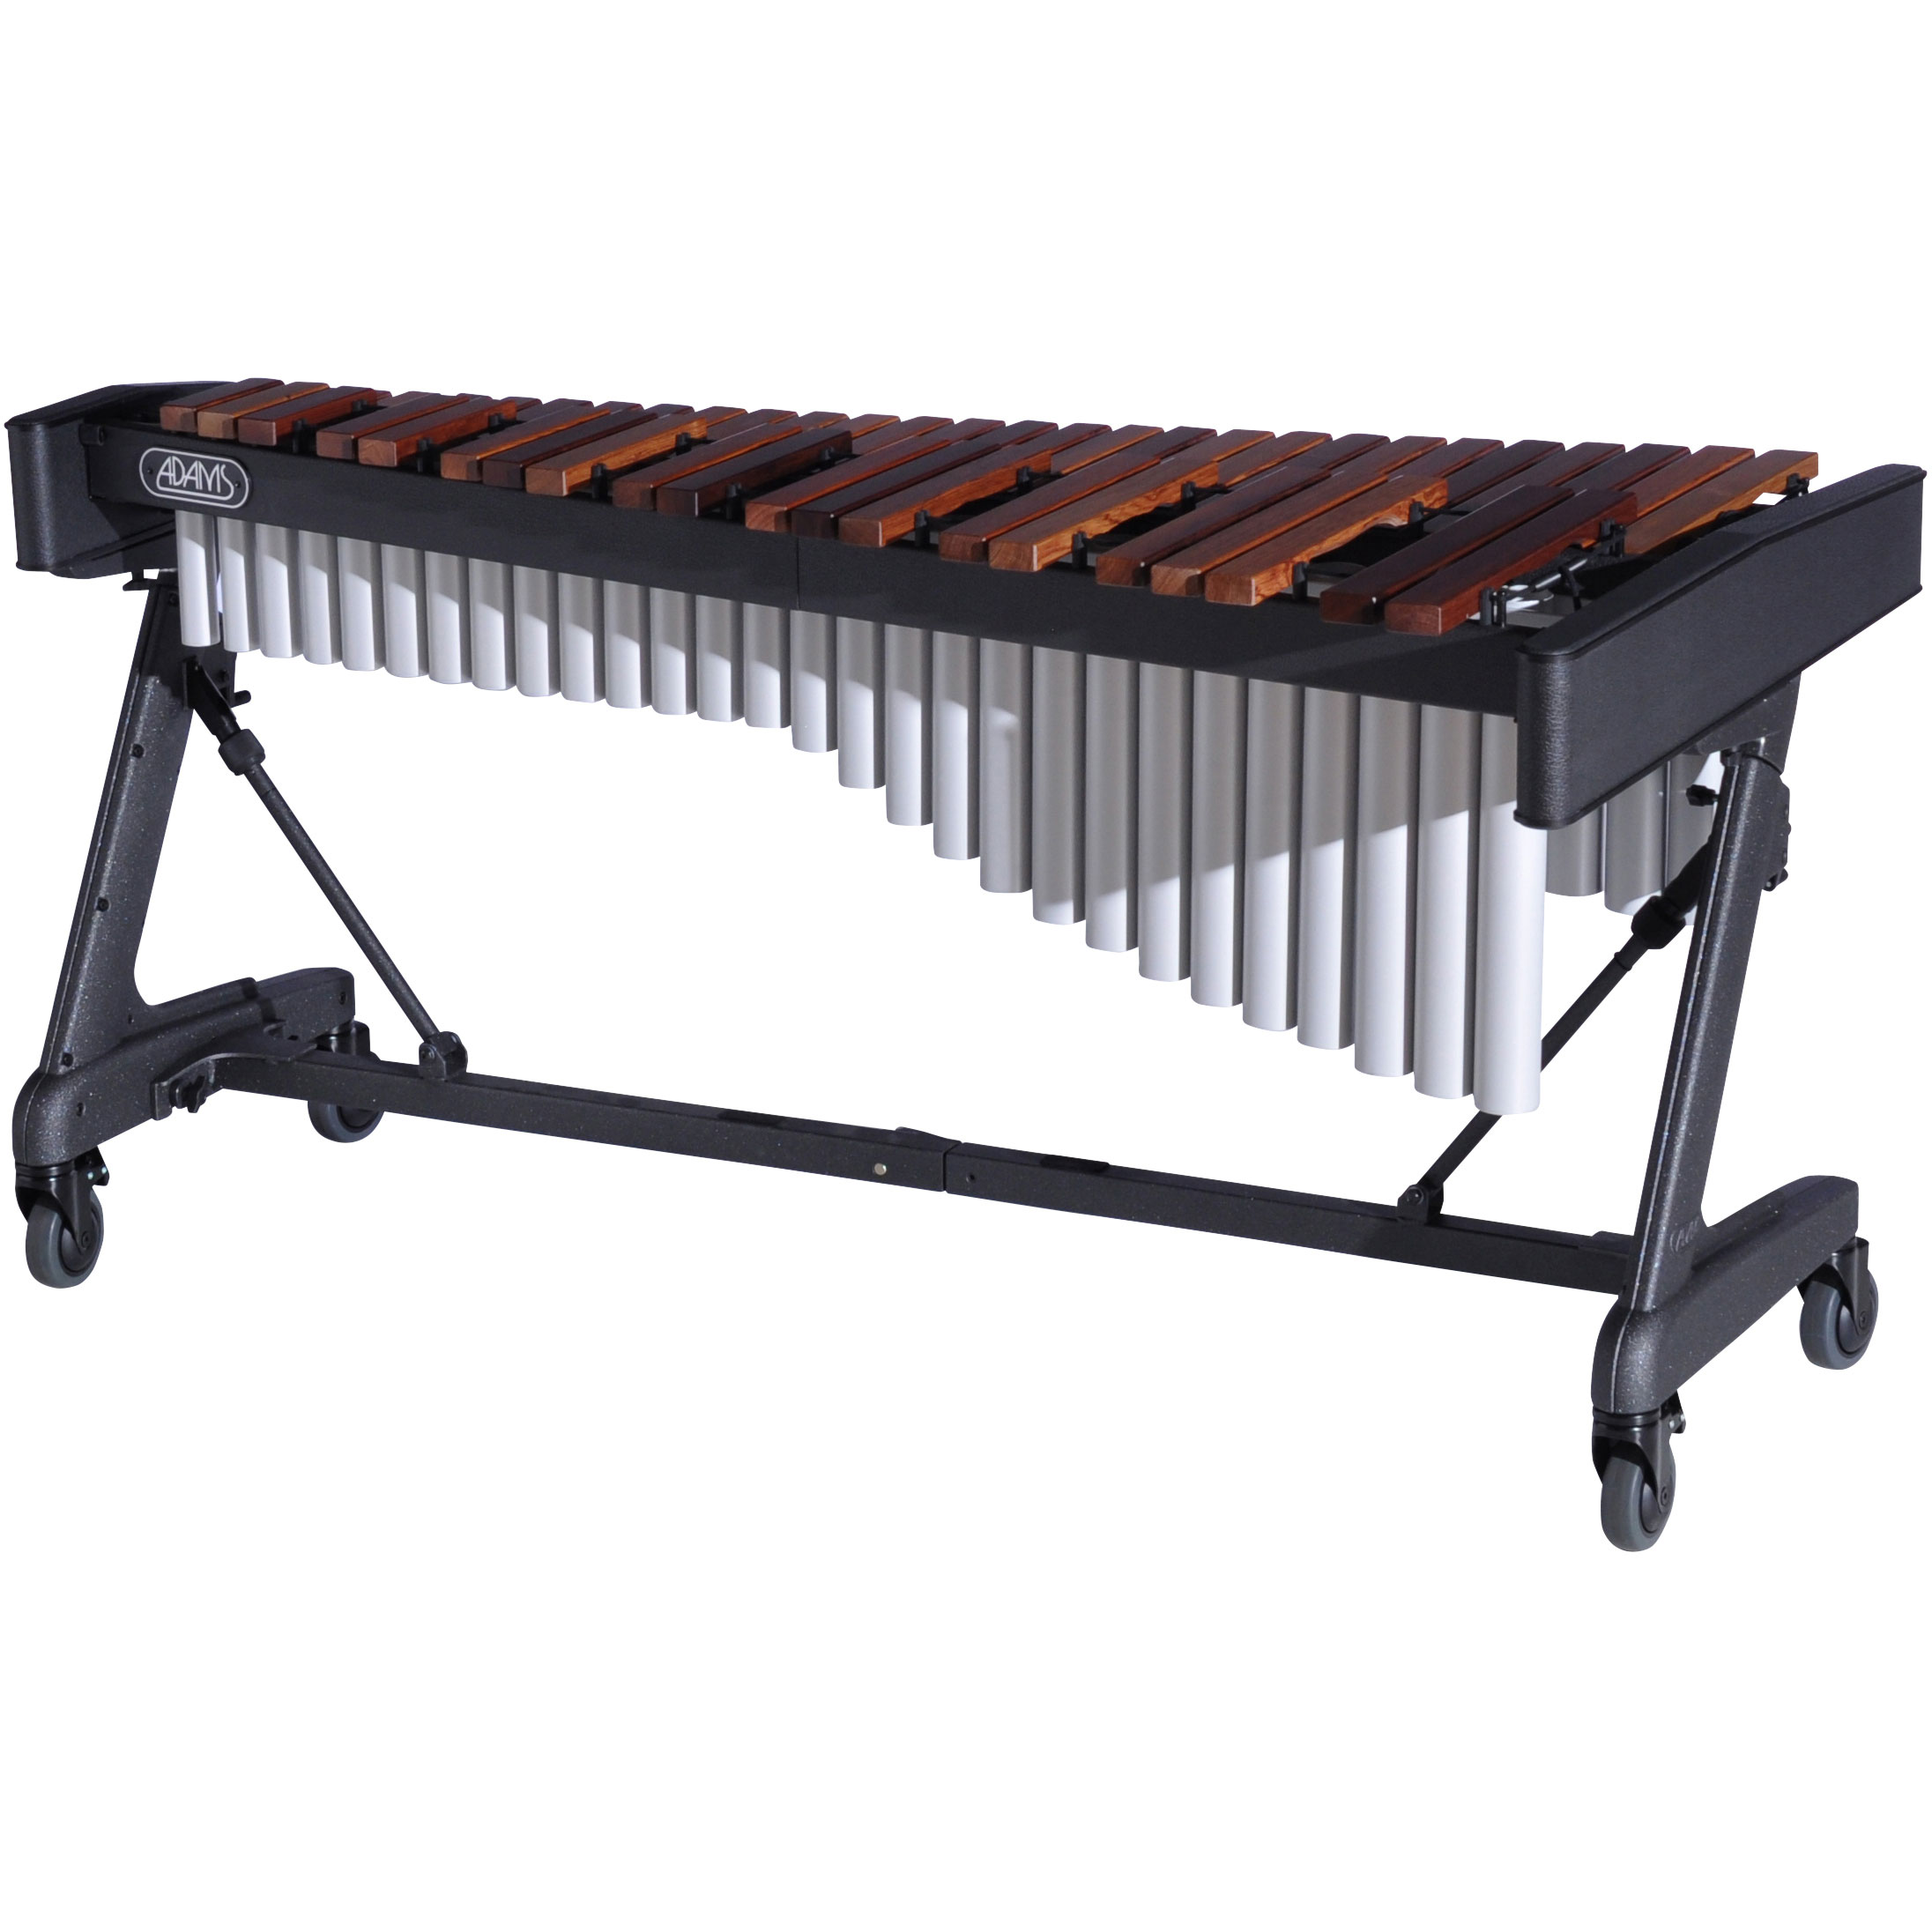 Adams 4.0 Octave Concert Series Rosewood Xylophone with Apex Frame